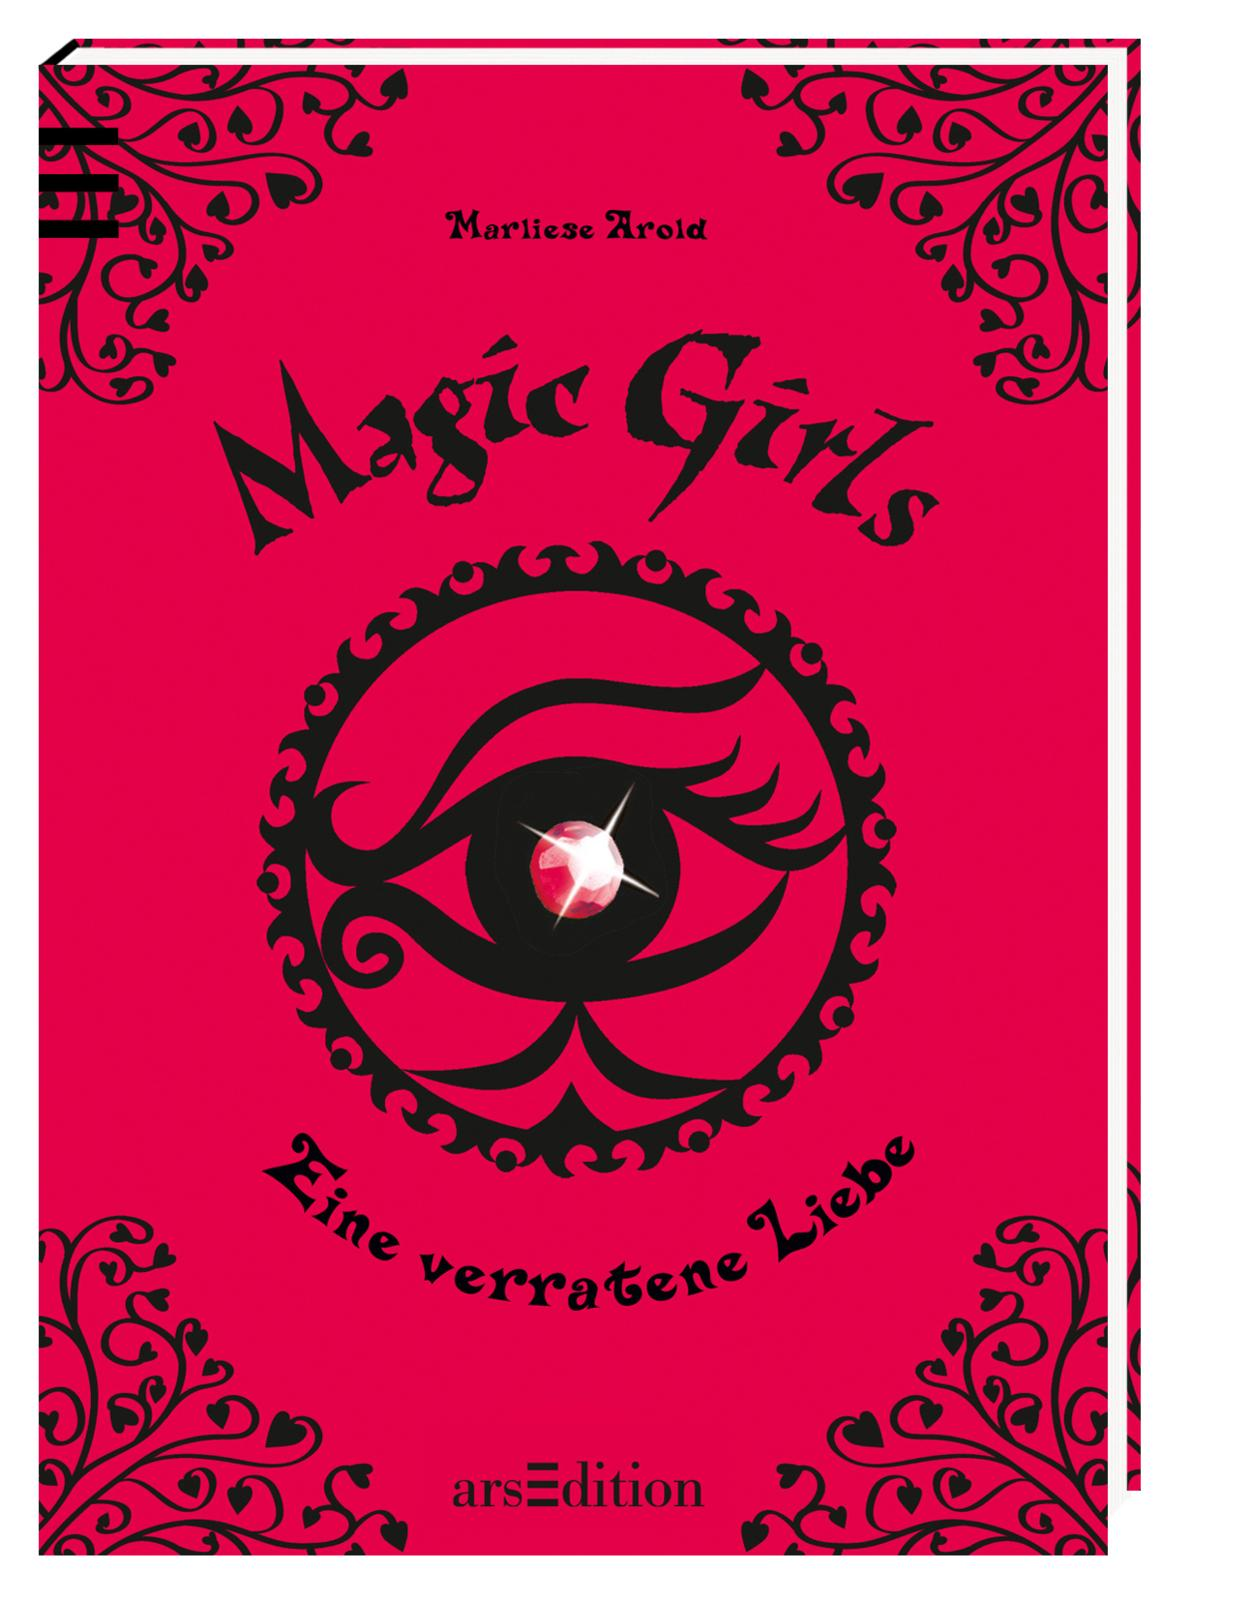 Magic Girls11. Eine verratene Liebe Marliese Arold